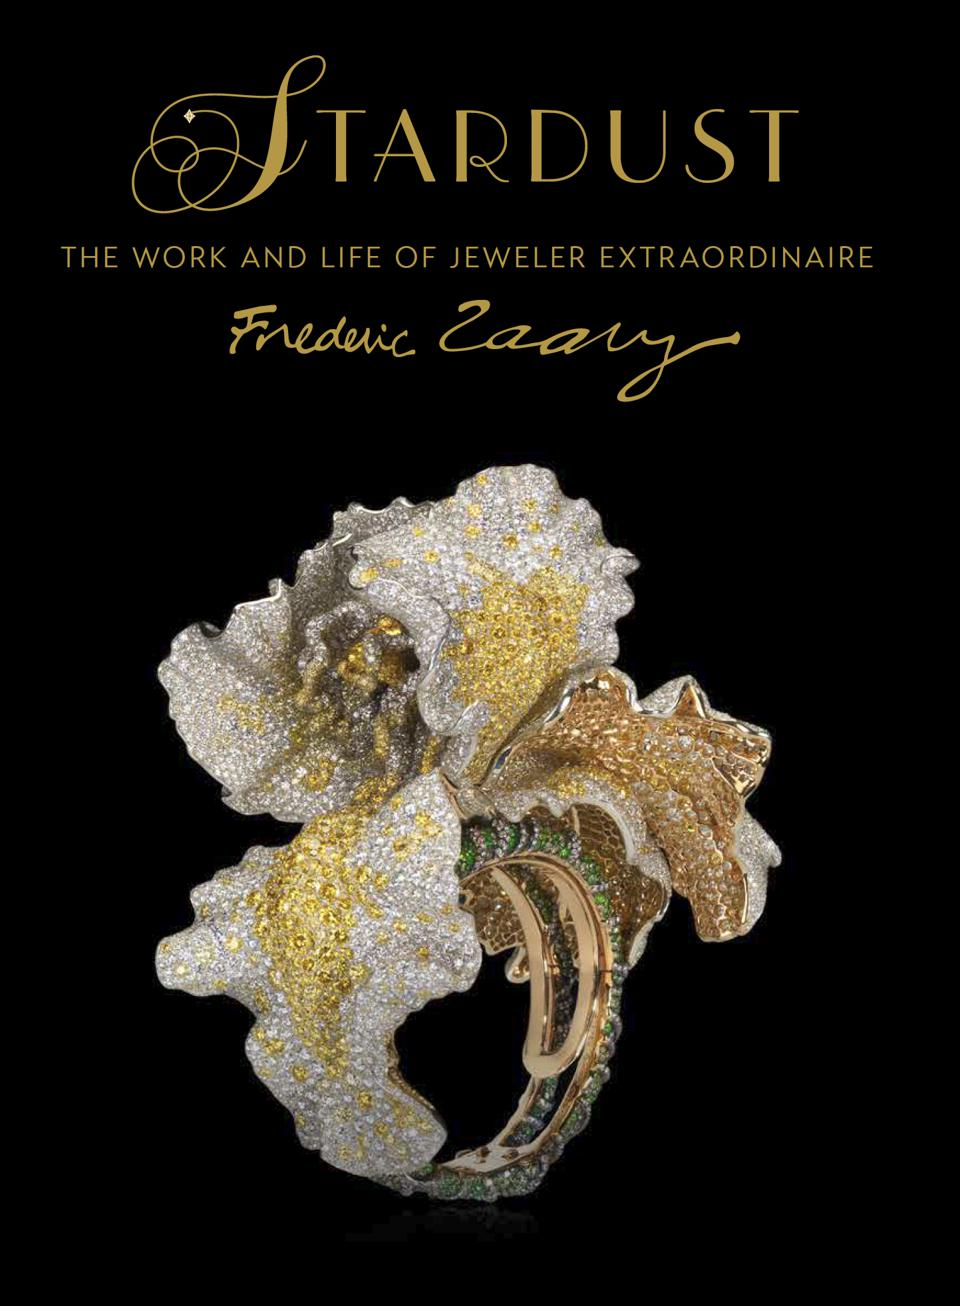 Frédéric Zaavy jewelry photography book by John Bigelow Taylor and Dianne Dubler.